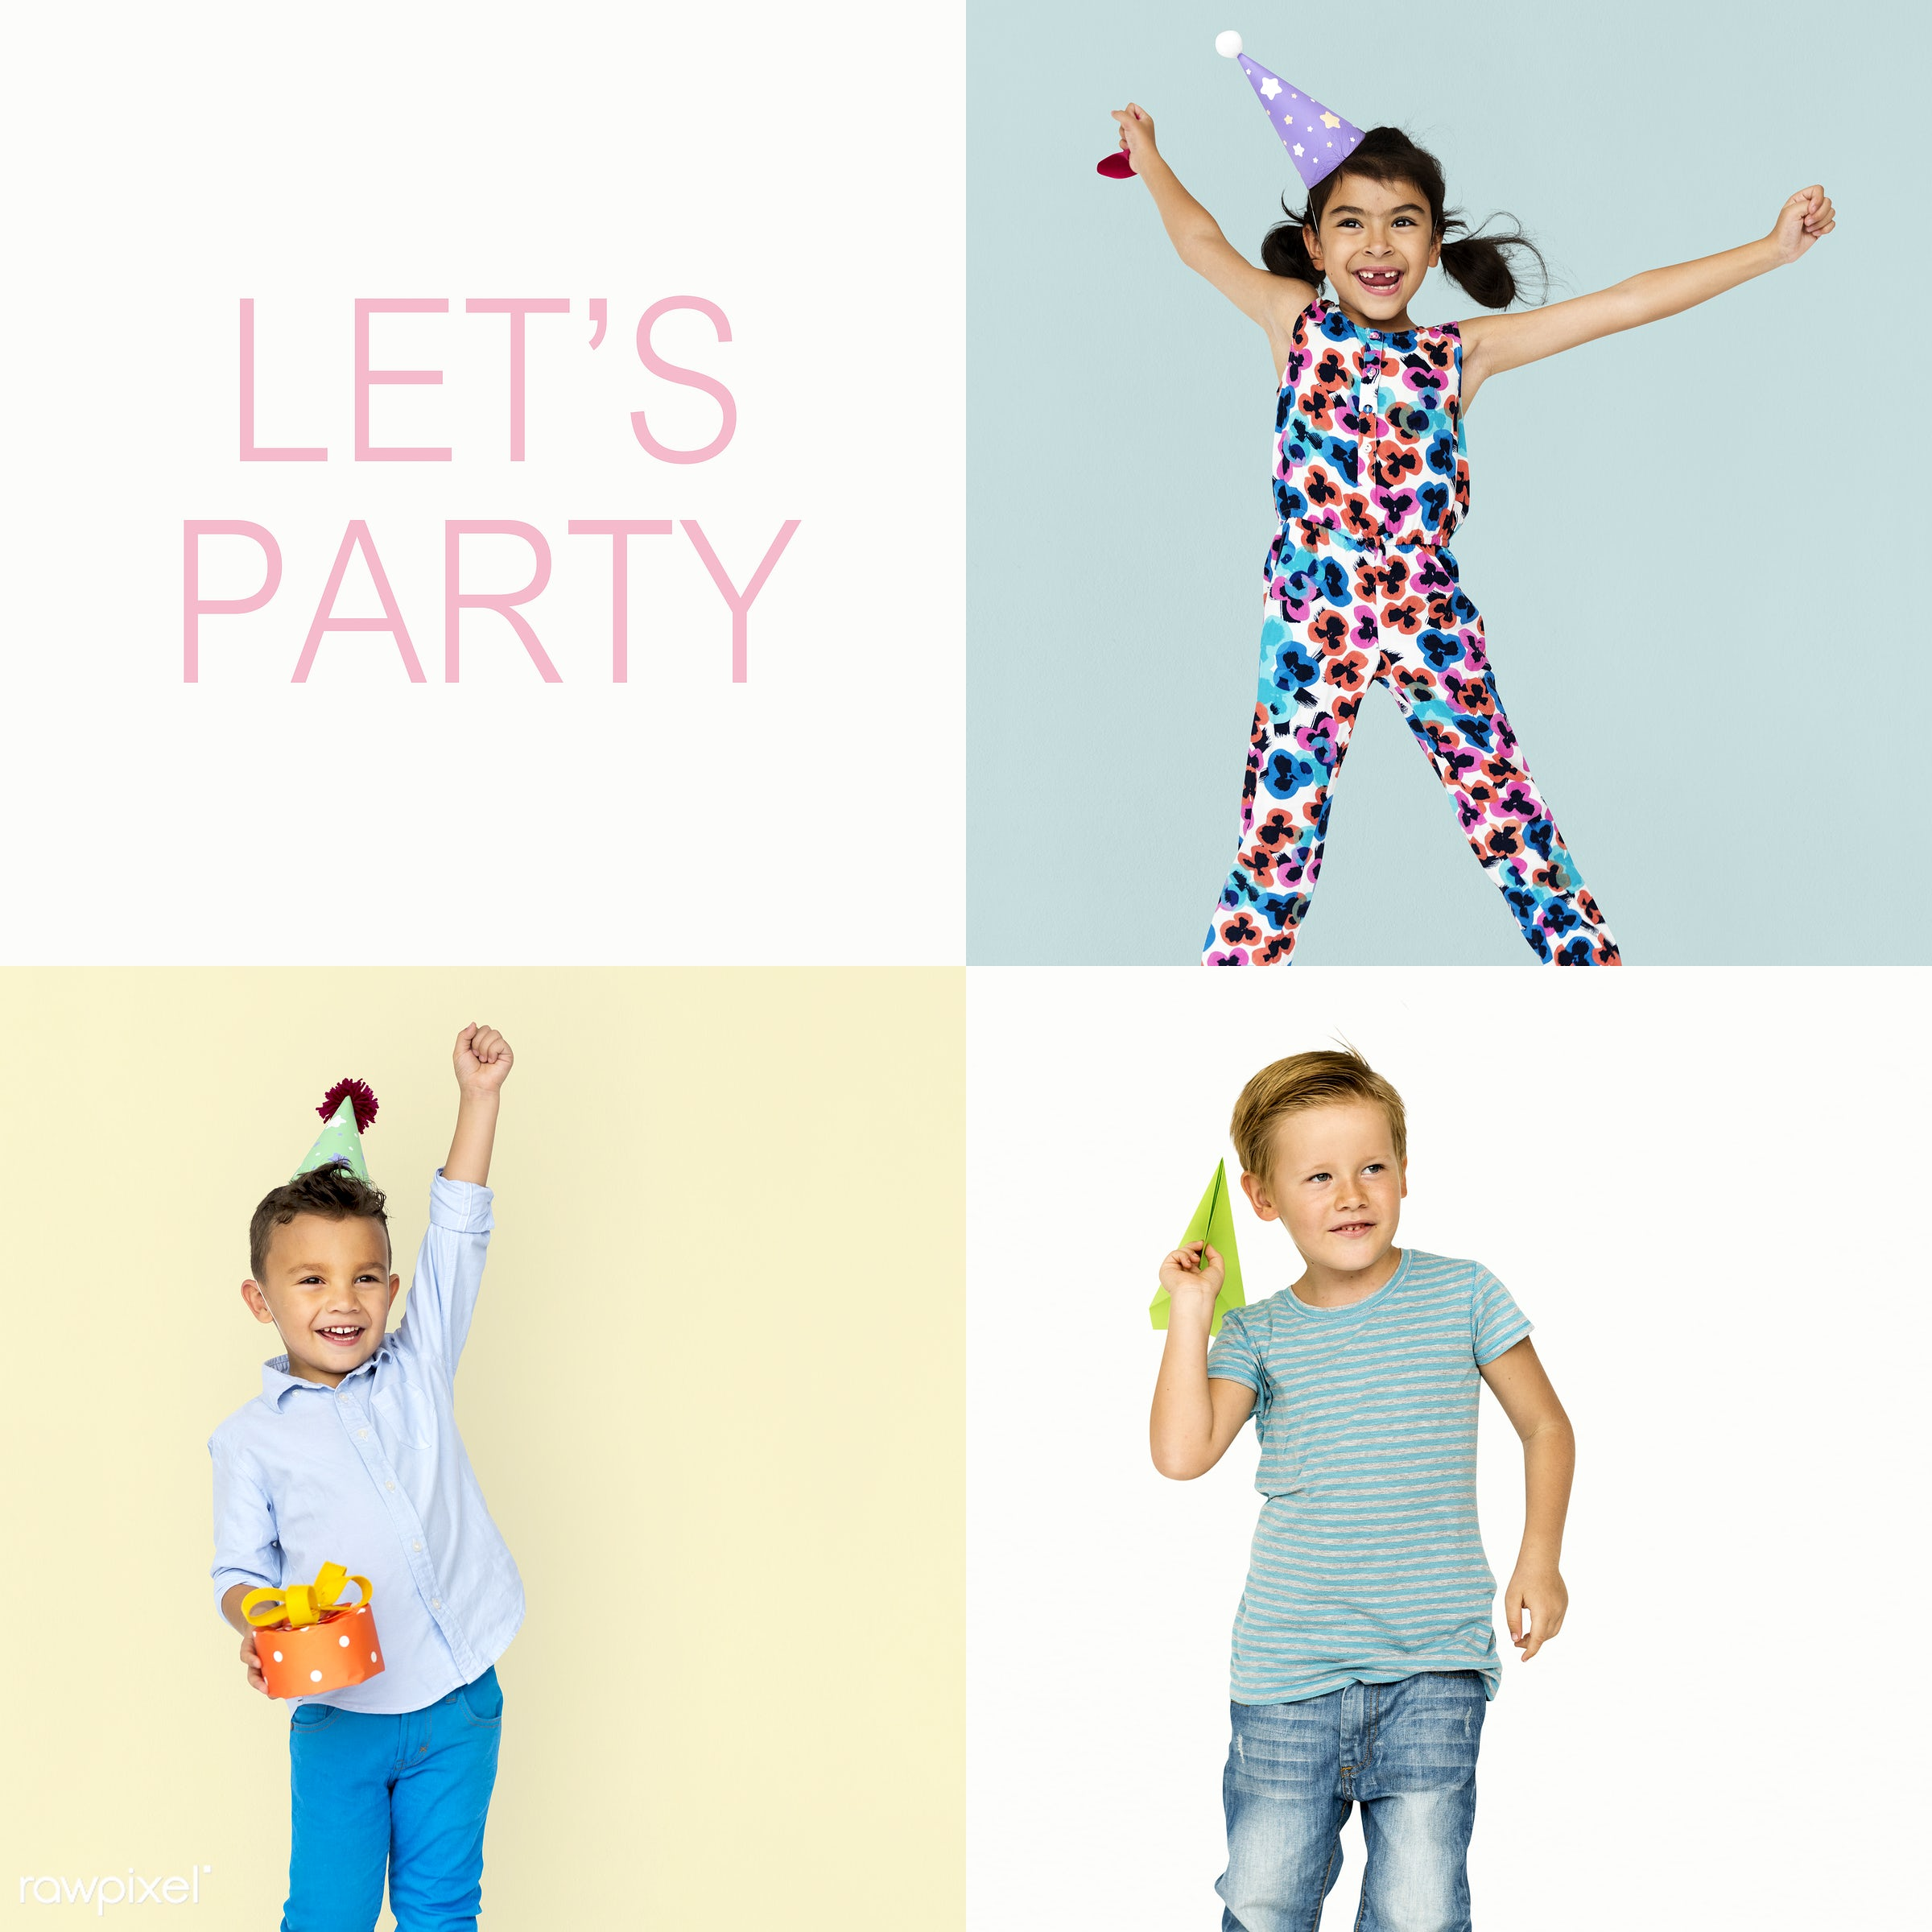 Set of portraits with celebration and happiness concepts - studio, relax, party, positivity, lifestyle, positive, smiling,...